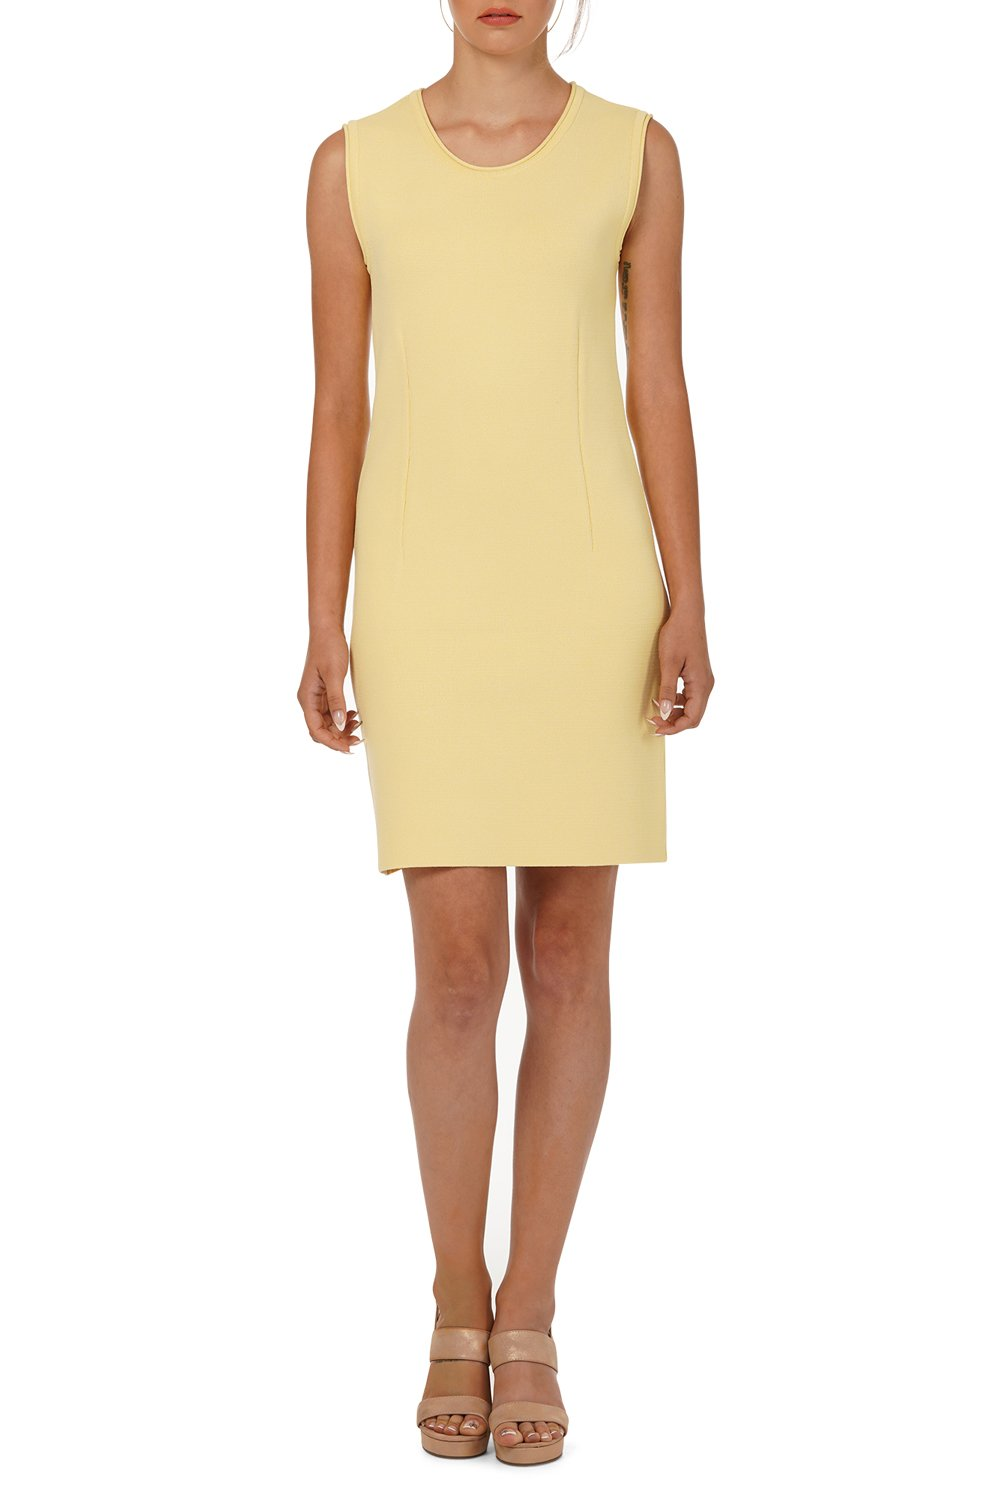 biana yellow dress.jpg